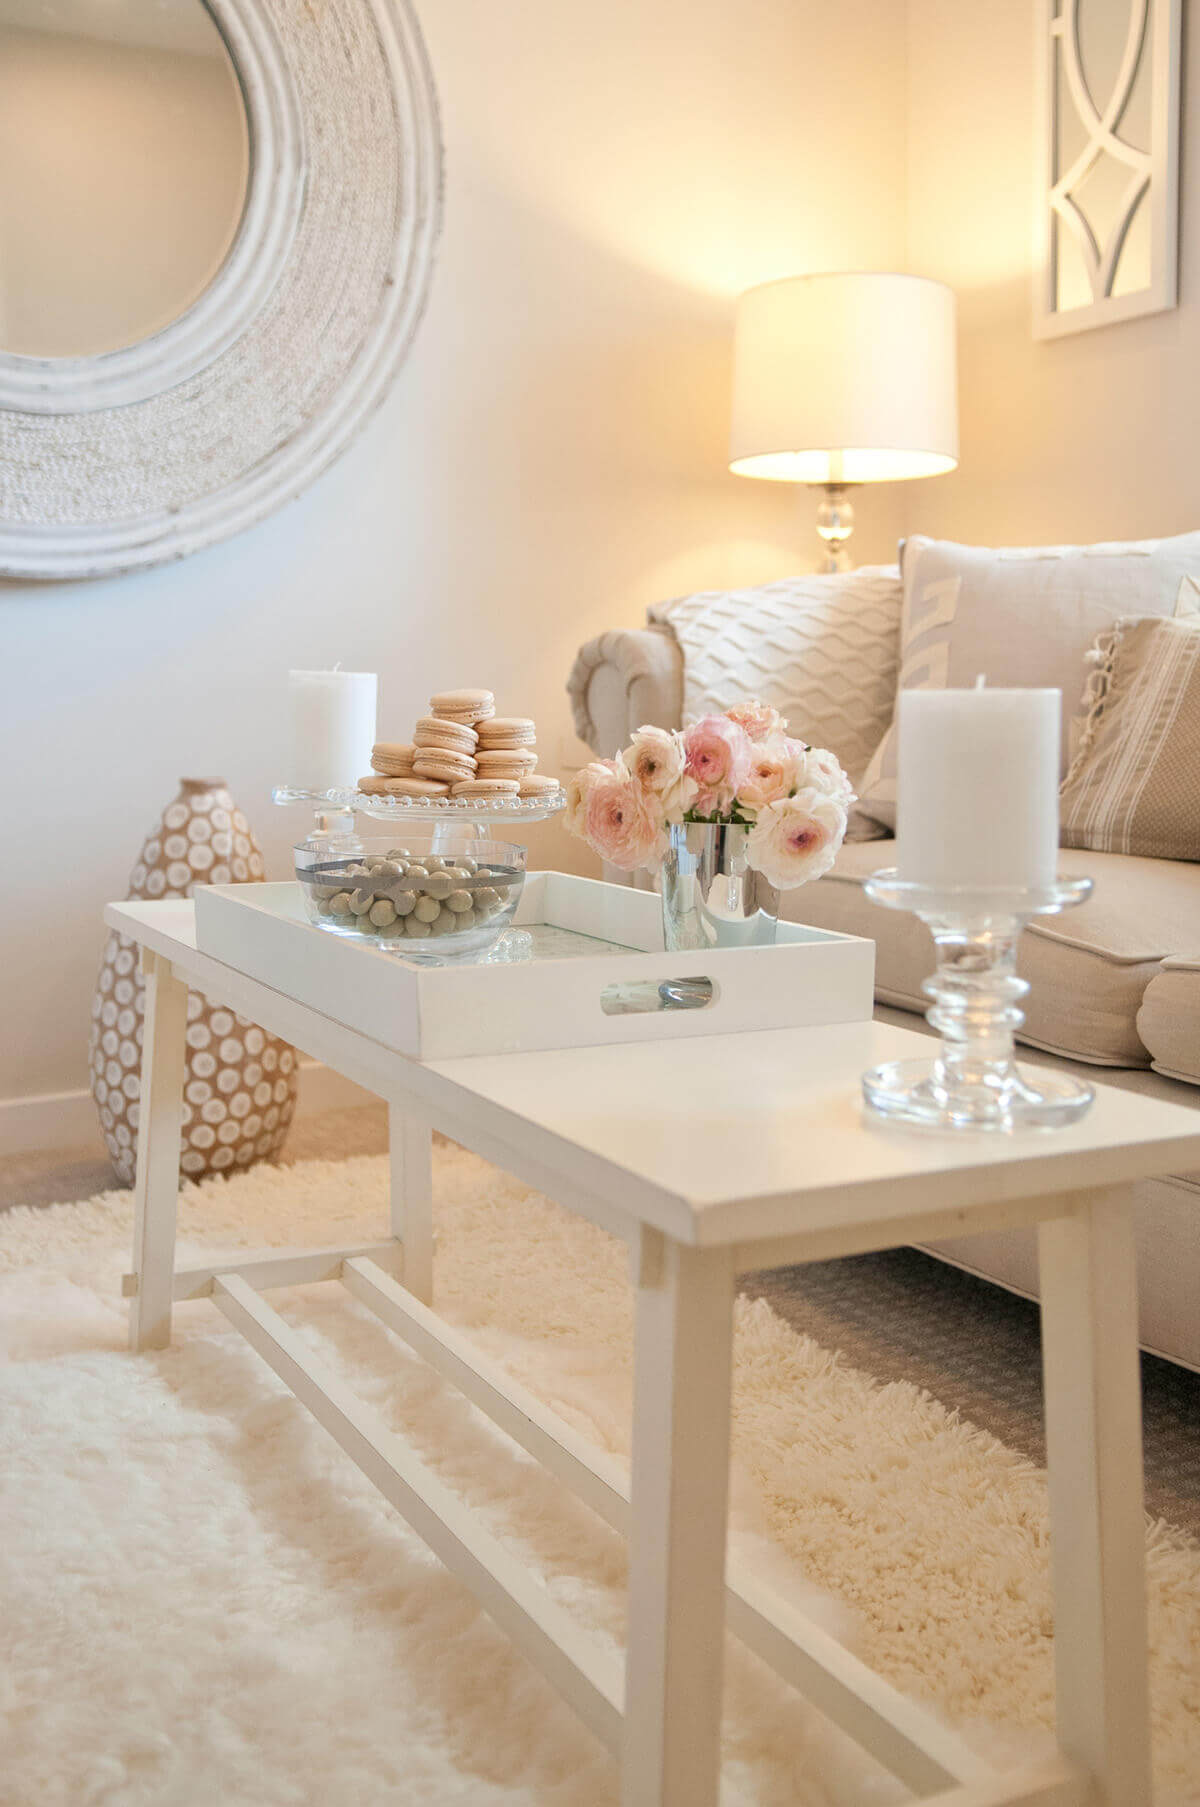 Soft and pretty beige interior